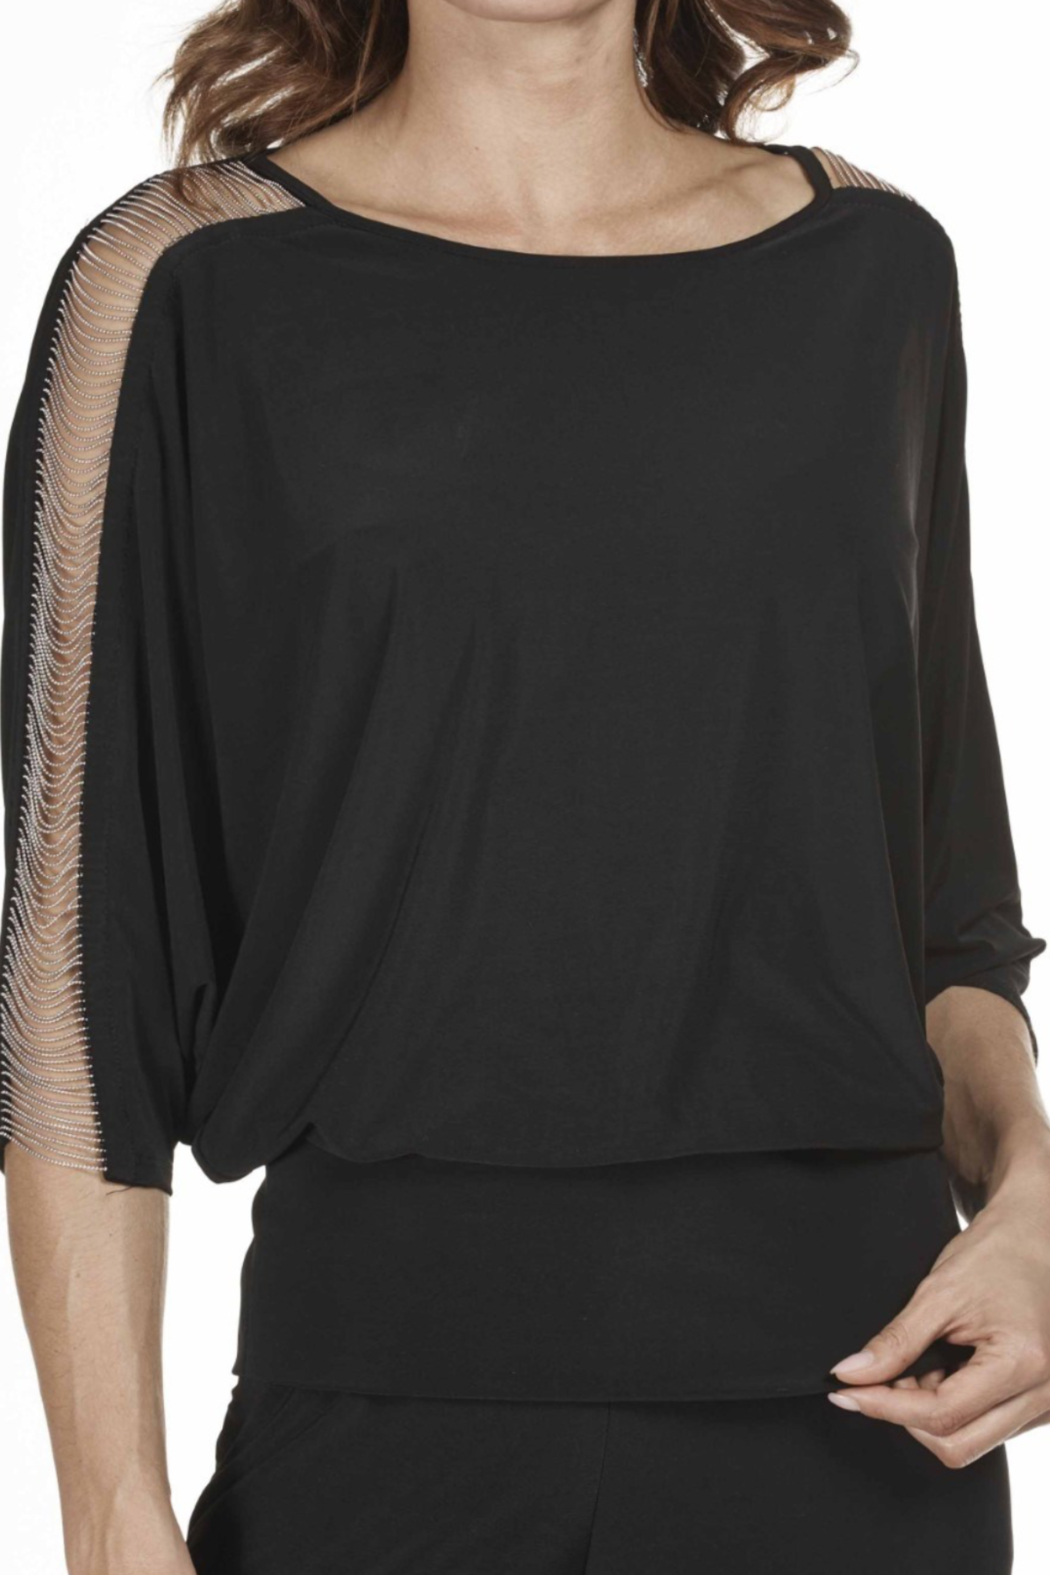 Frank Lyman Cold Shoulder Black Pullover Top - Main Image